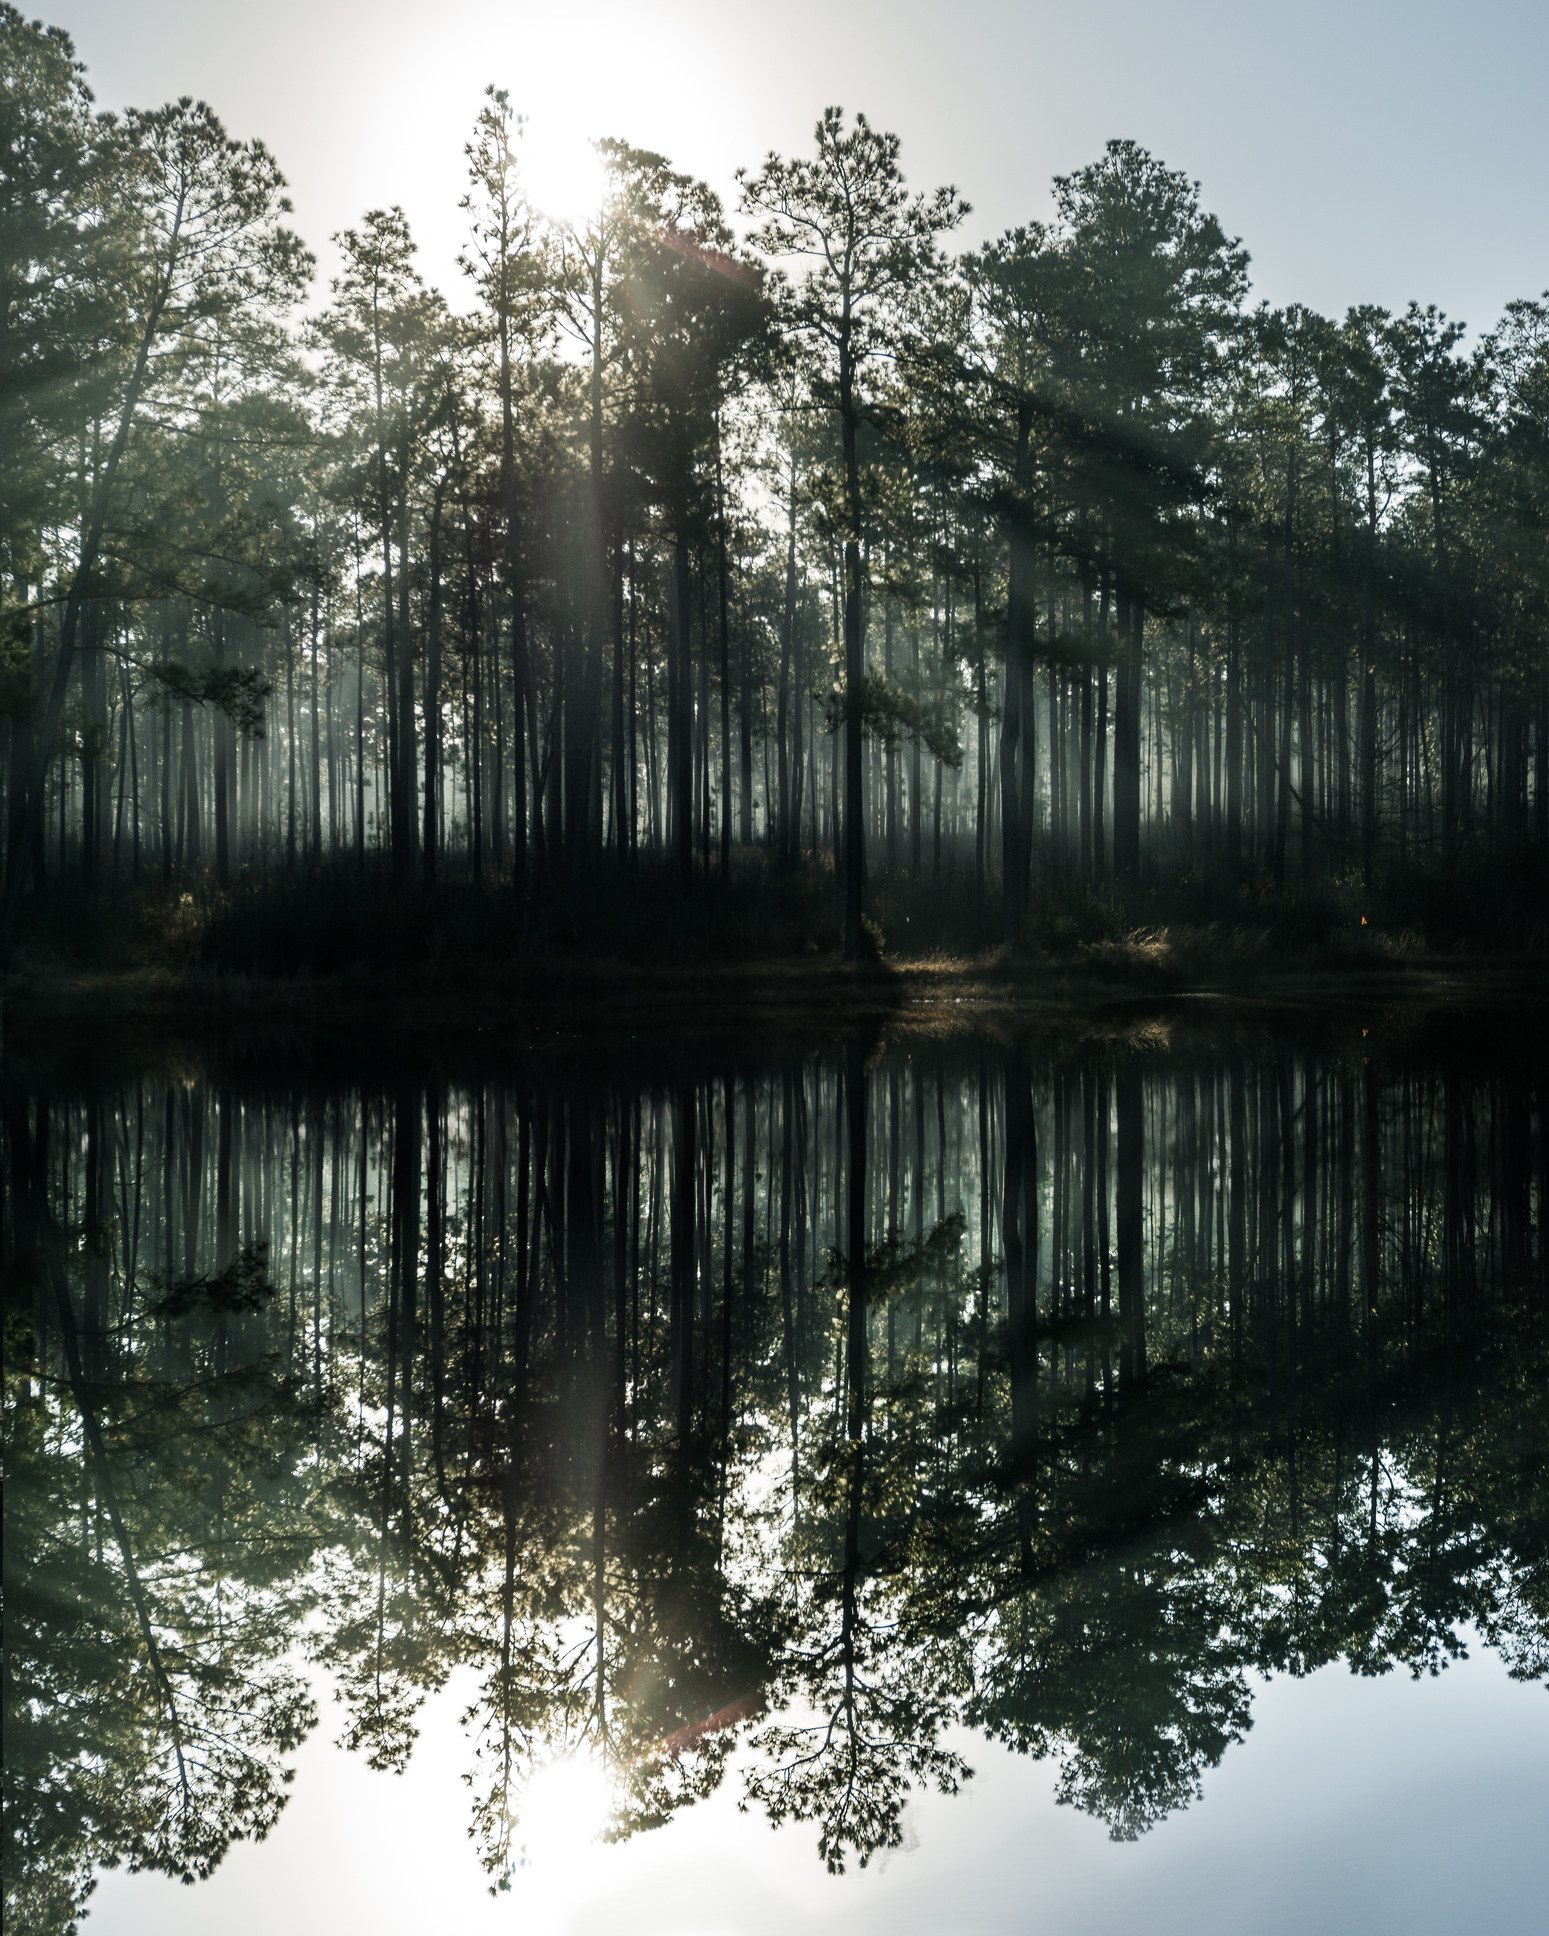 The sun rises through the trees in front of a lake in the DeSoto National Forest in Mississippi